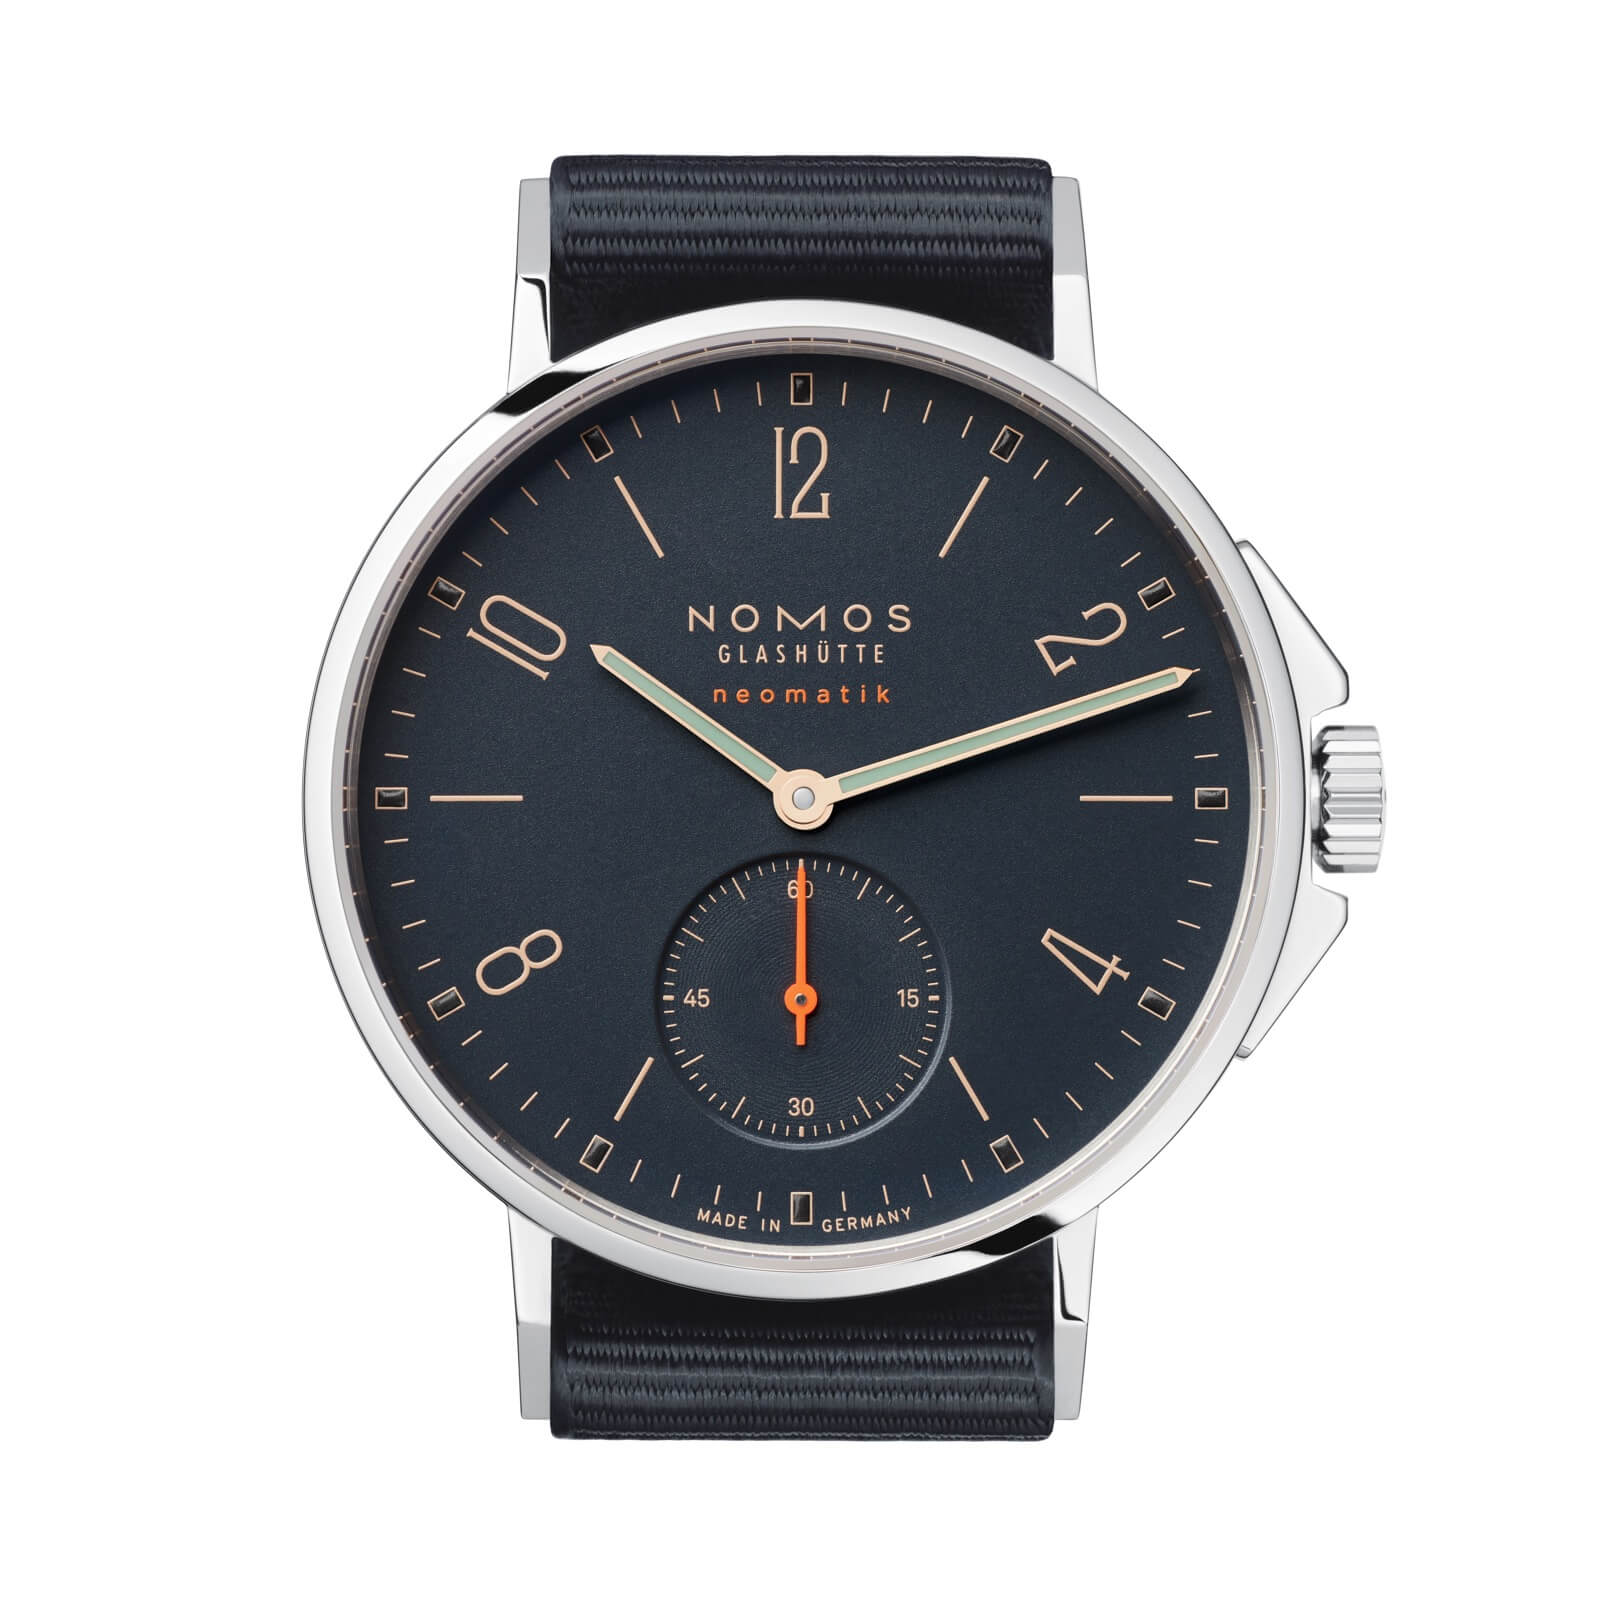 Nomos Glashütte Neomatik Atlantik watch